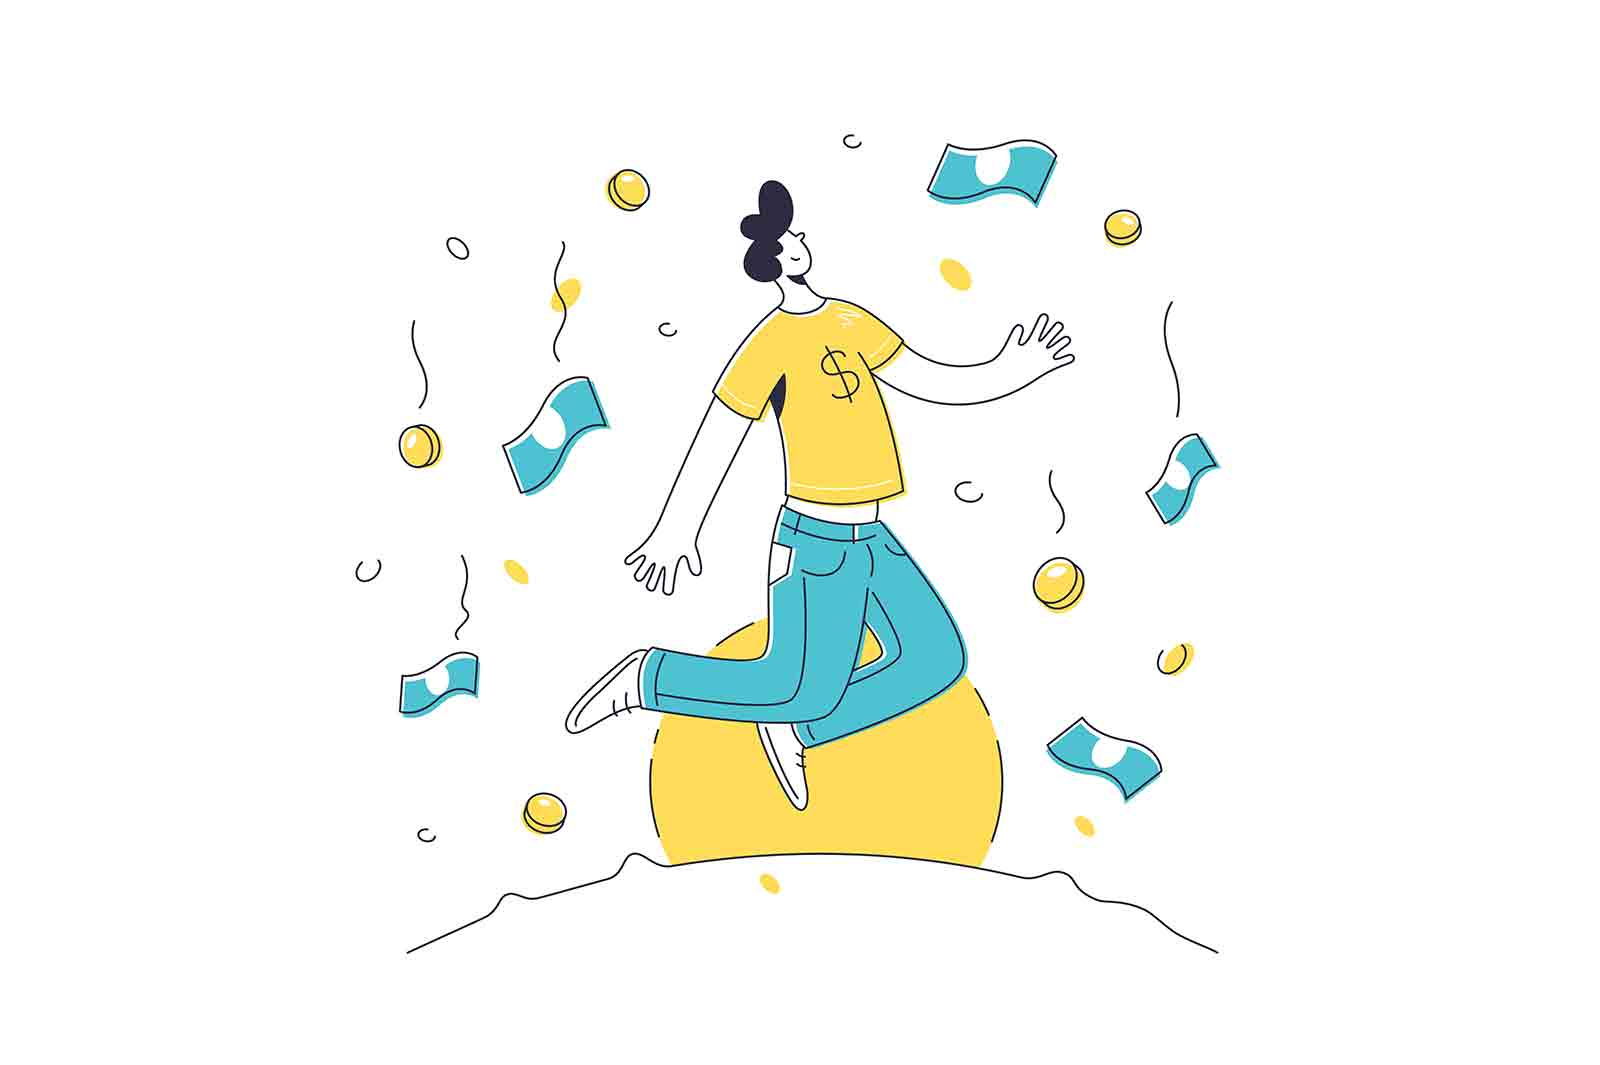 Character stand under rain of money vector illustration. Falling banknotes and coins from sky line style. Success, wealth, finance concept